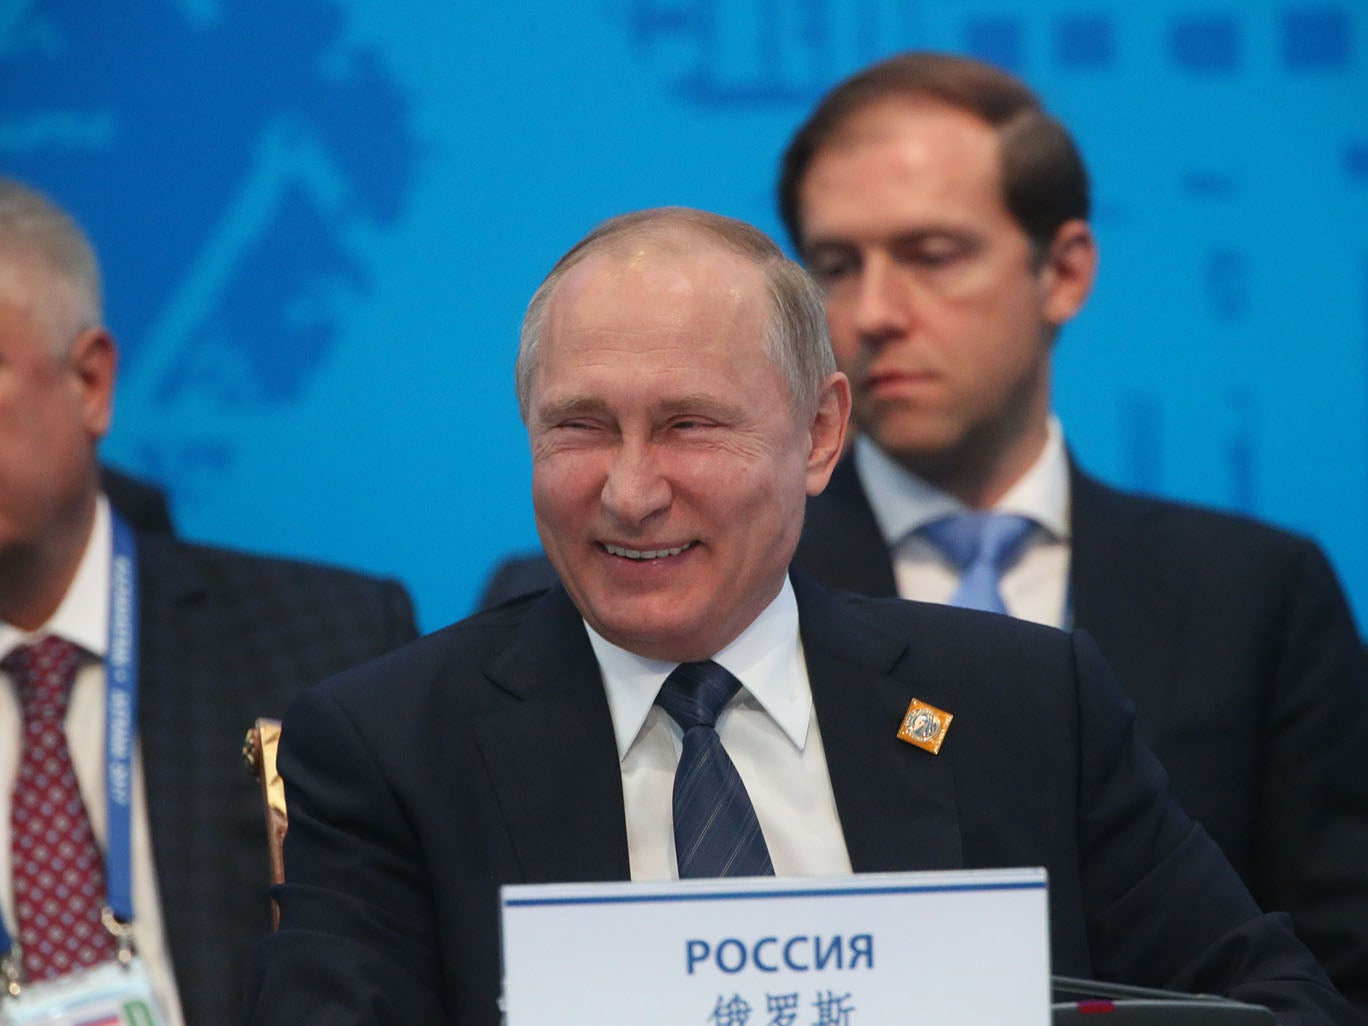 World S Richest People Vladimir Putin Might Be Wealthier Than Bill Gates And Jeff Bezos Combined The Independent The Independent